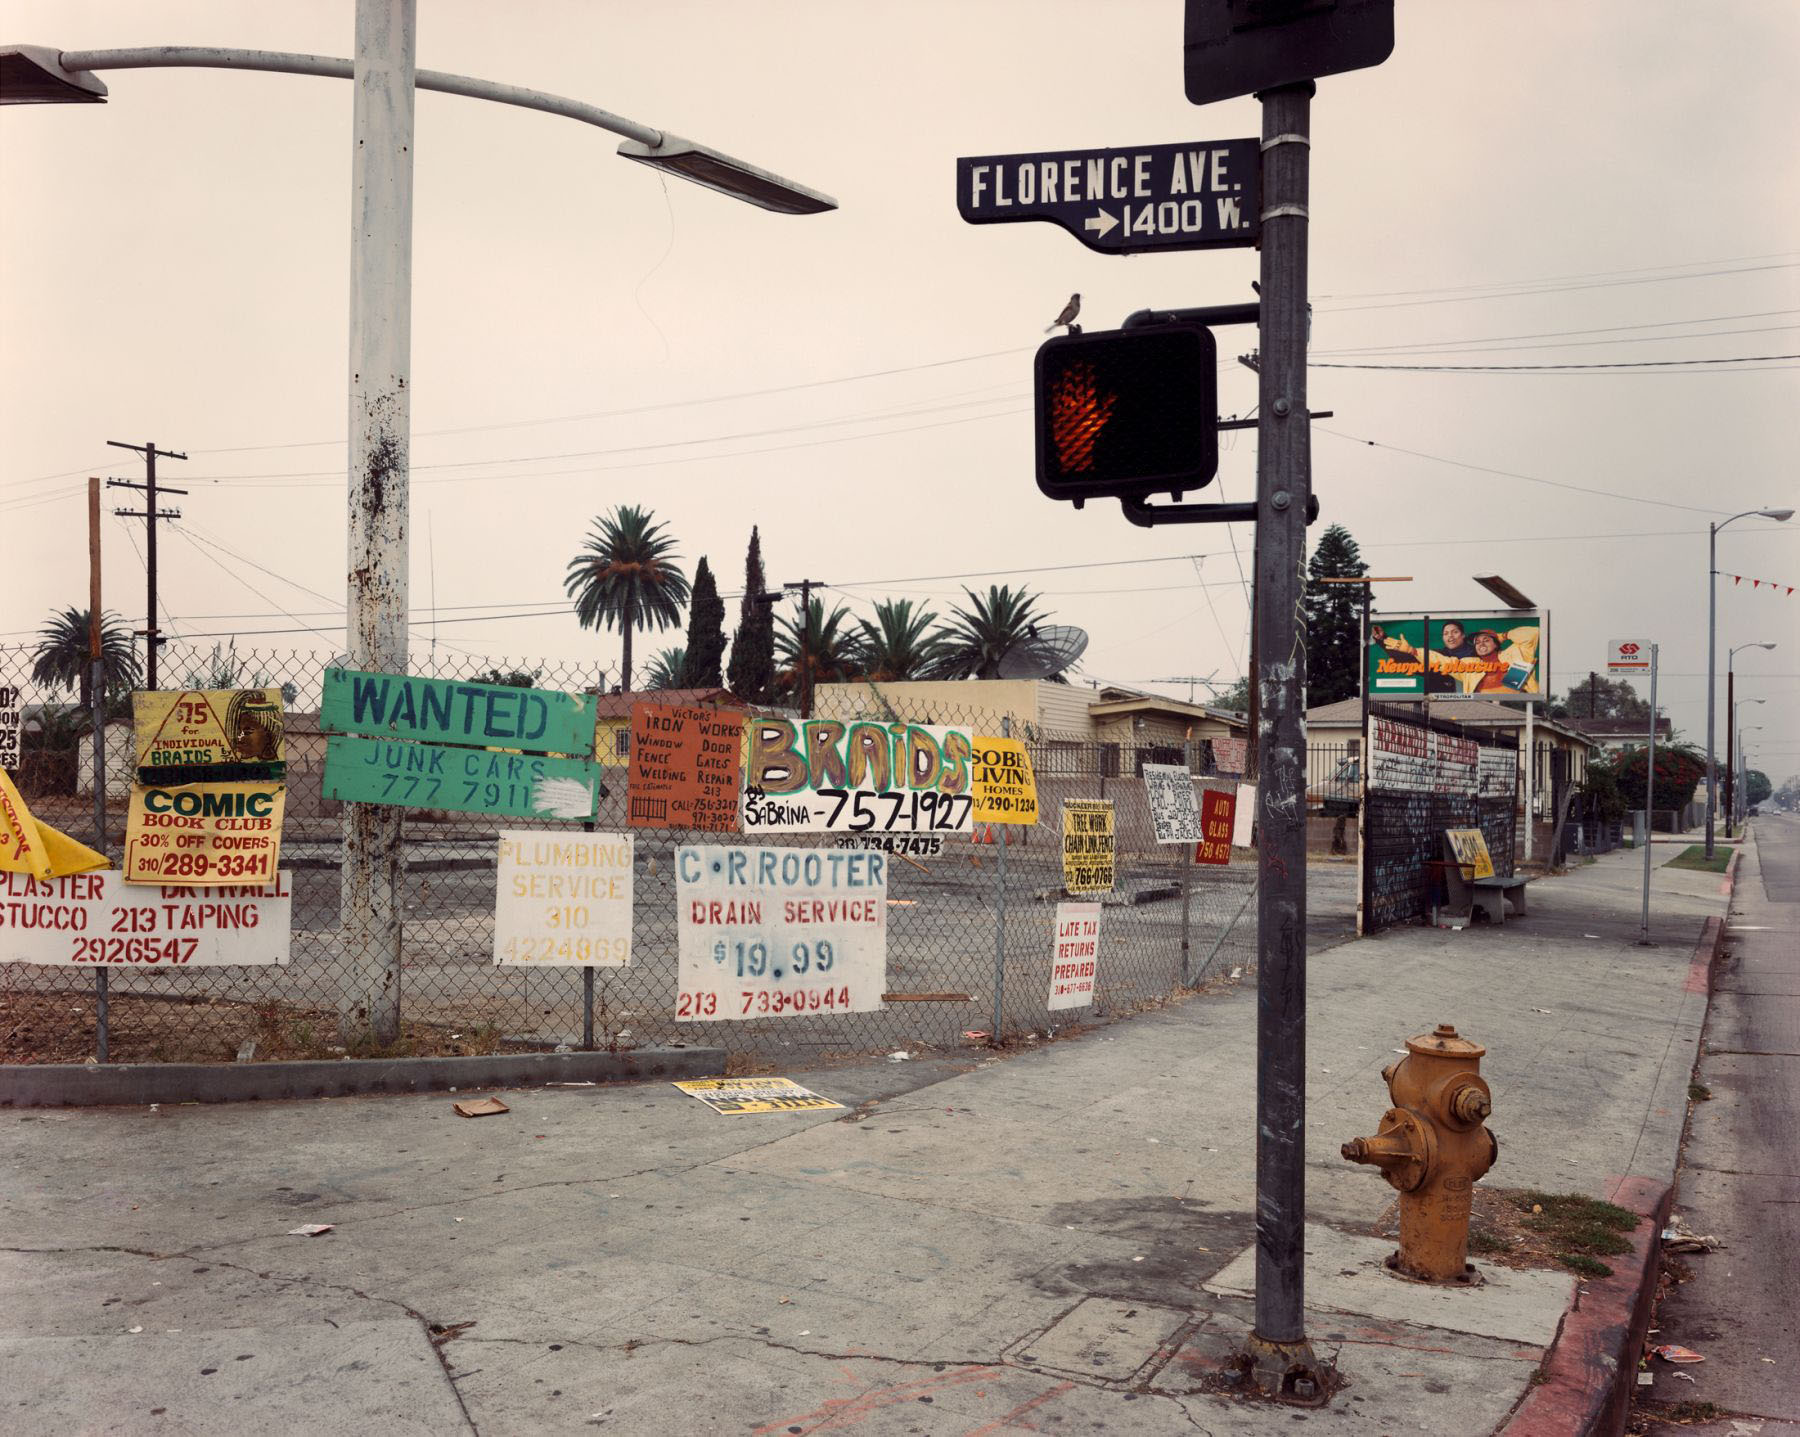 The Northwest Corner of Florence and Normandie Avenues, Los Angeles, CA, October 1993